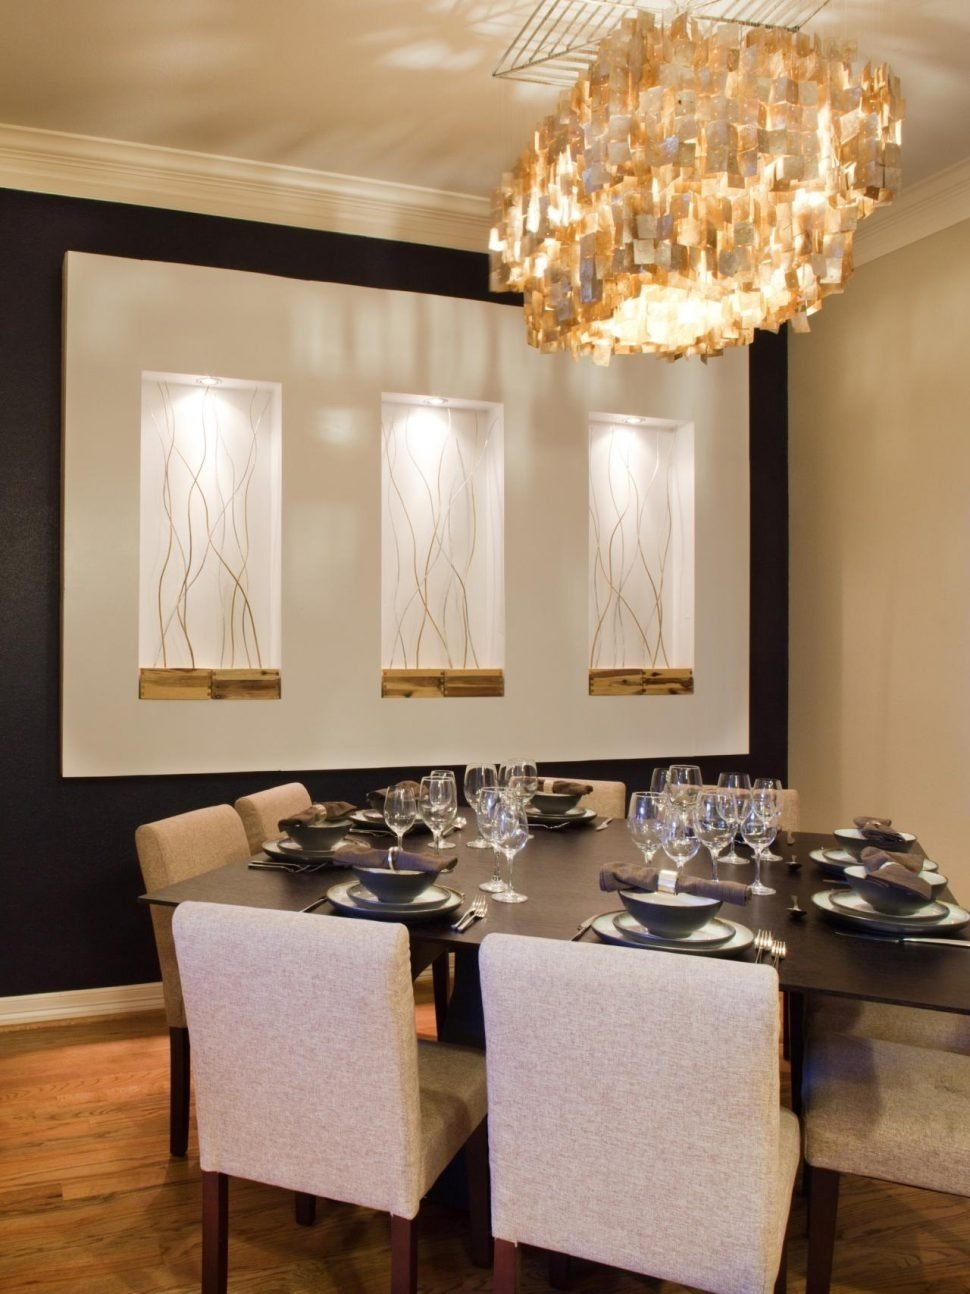 10 Unique Wall Decor Ideas For Dining Room dining room contemporary dining room wall decor decorating ideas 2020